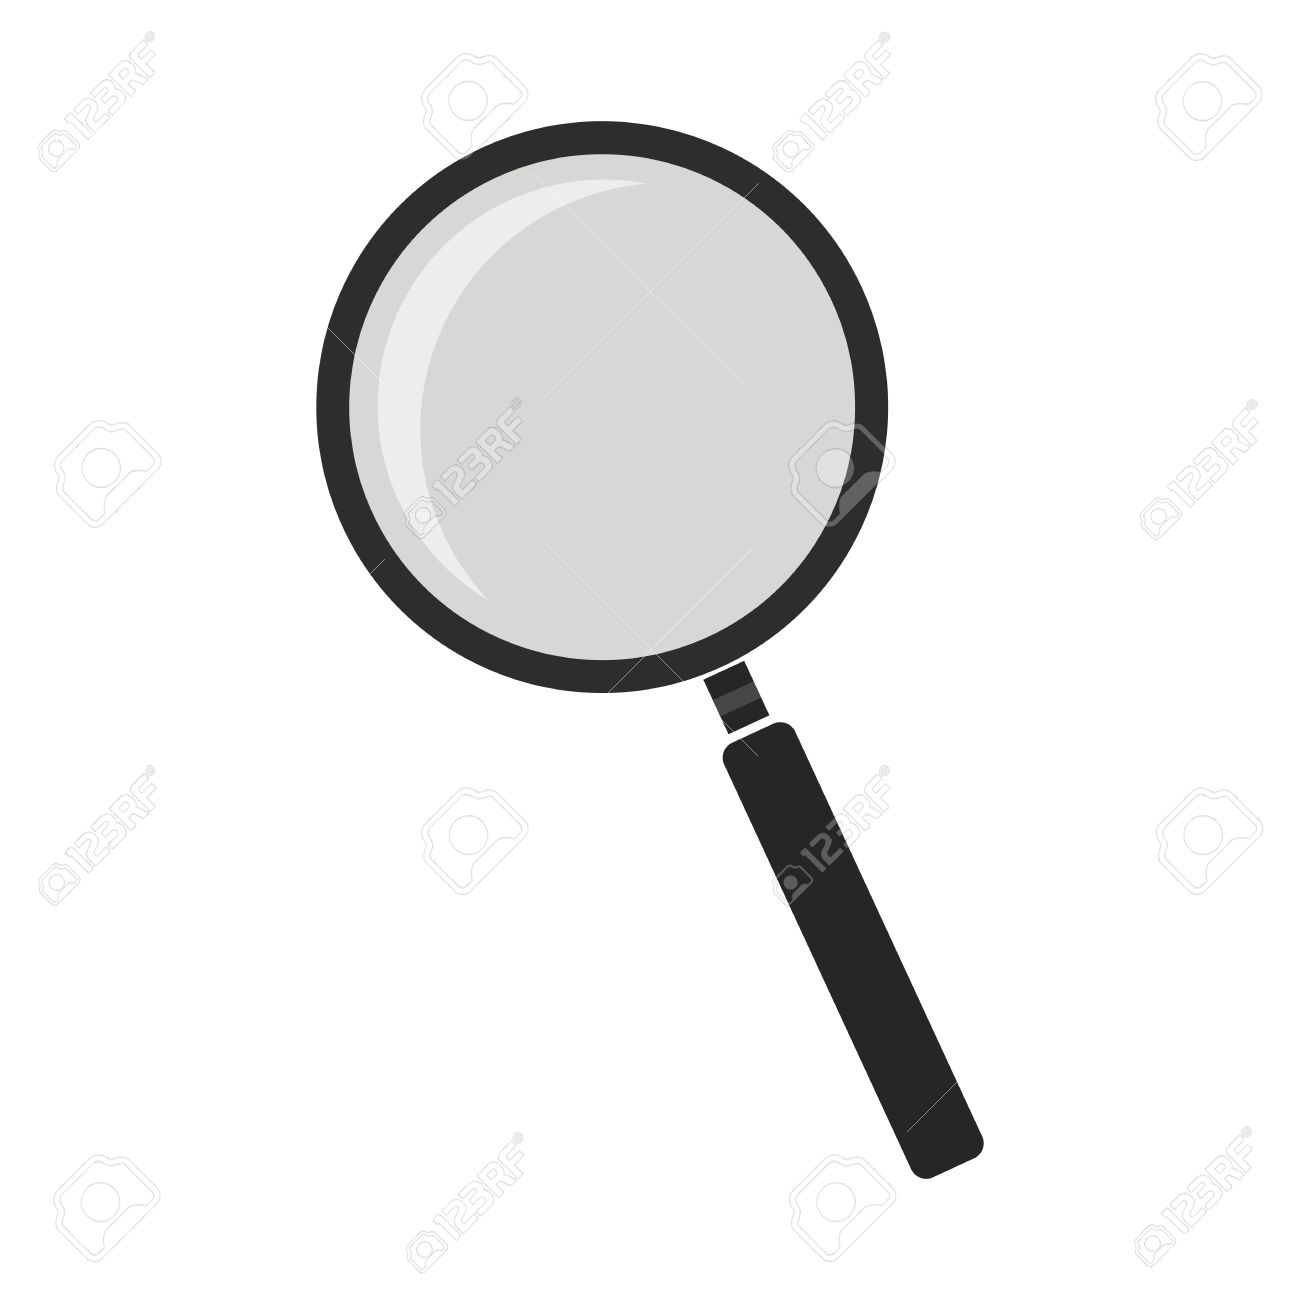 1300x1300 Tool Outline Clipart. Magnifying Glass Tool Zoom Icon Vector Color